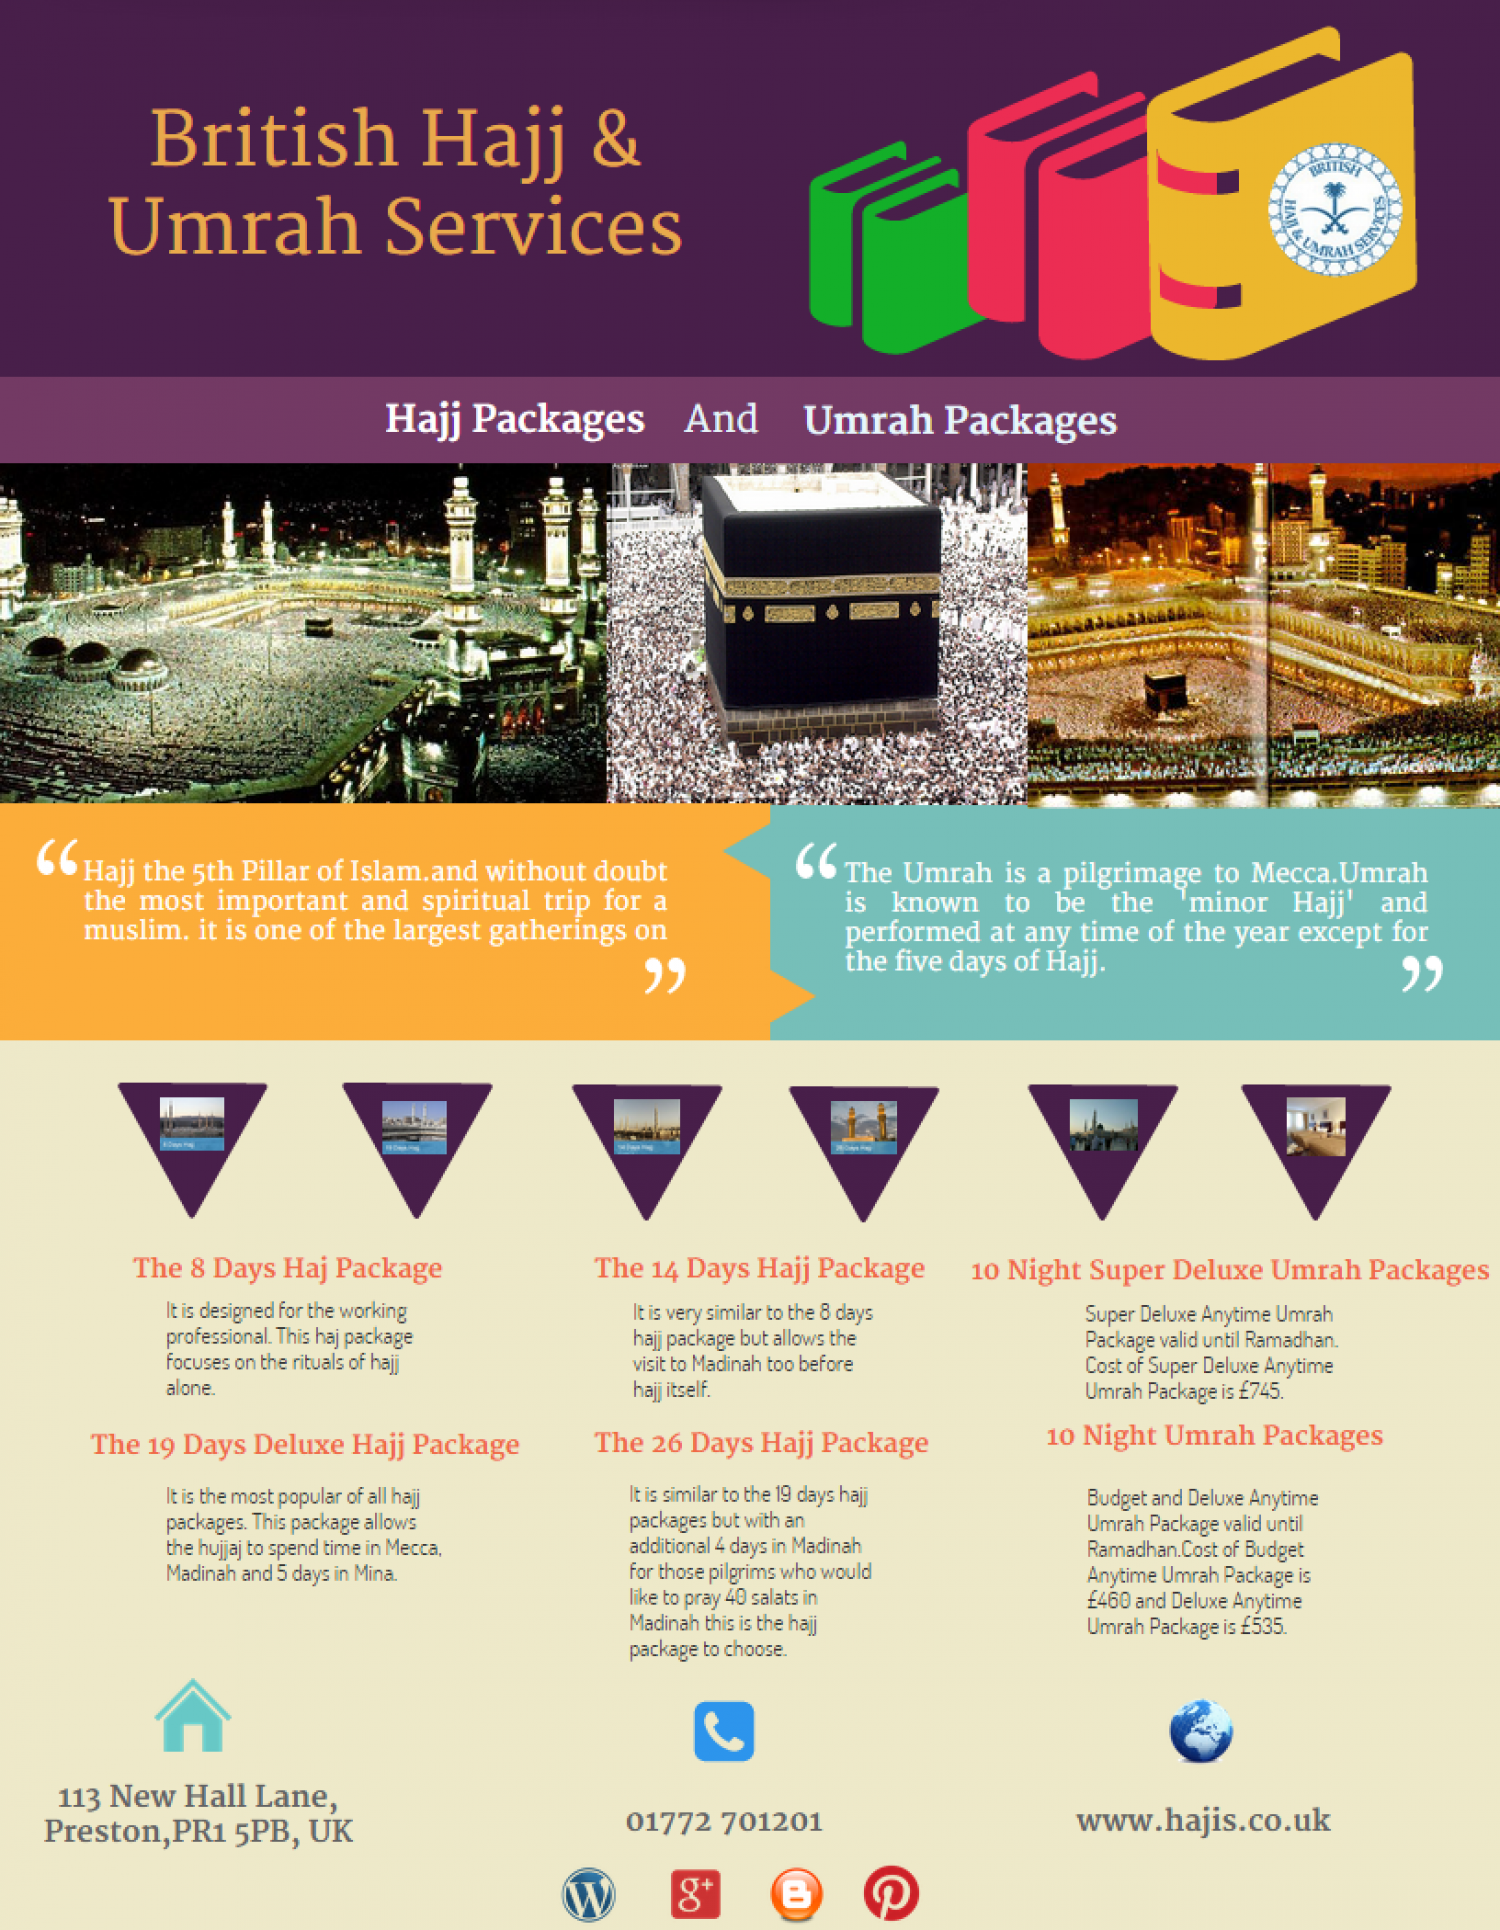 Hajj and Umrah Packages | Visual.ly